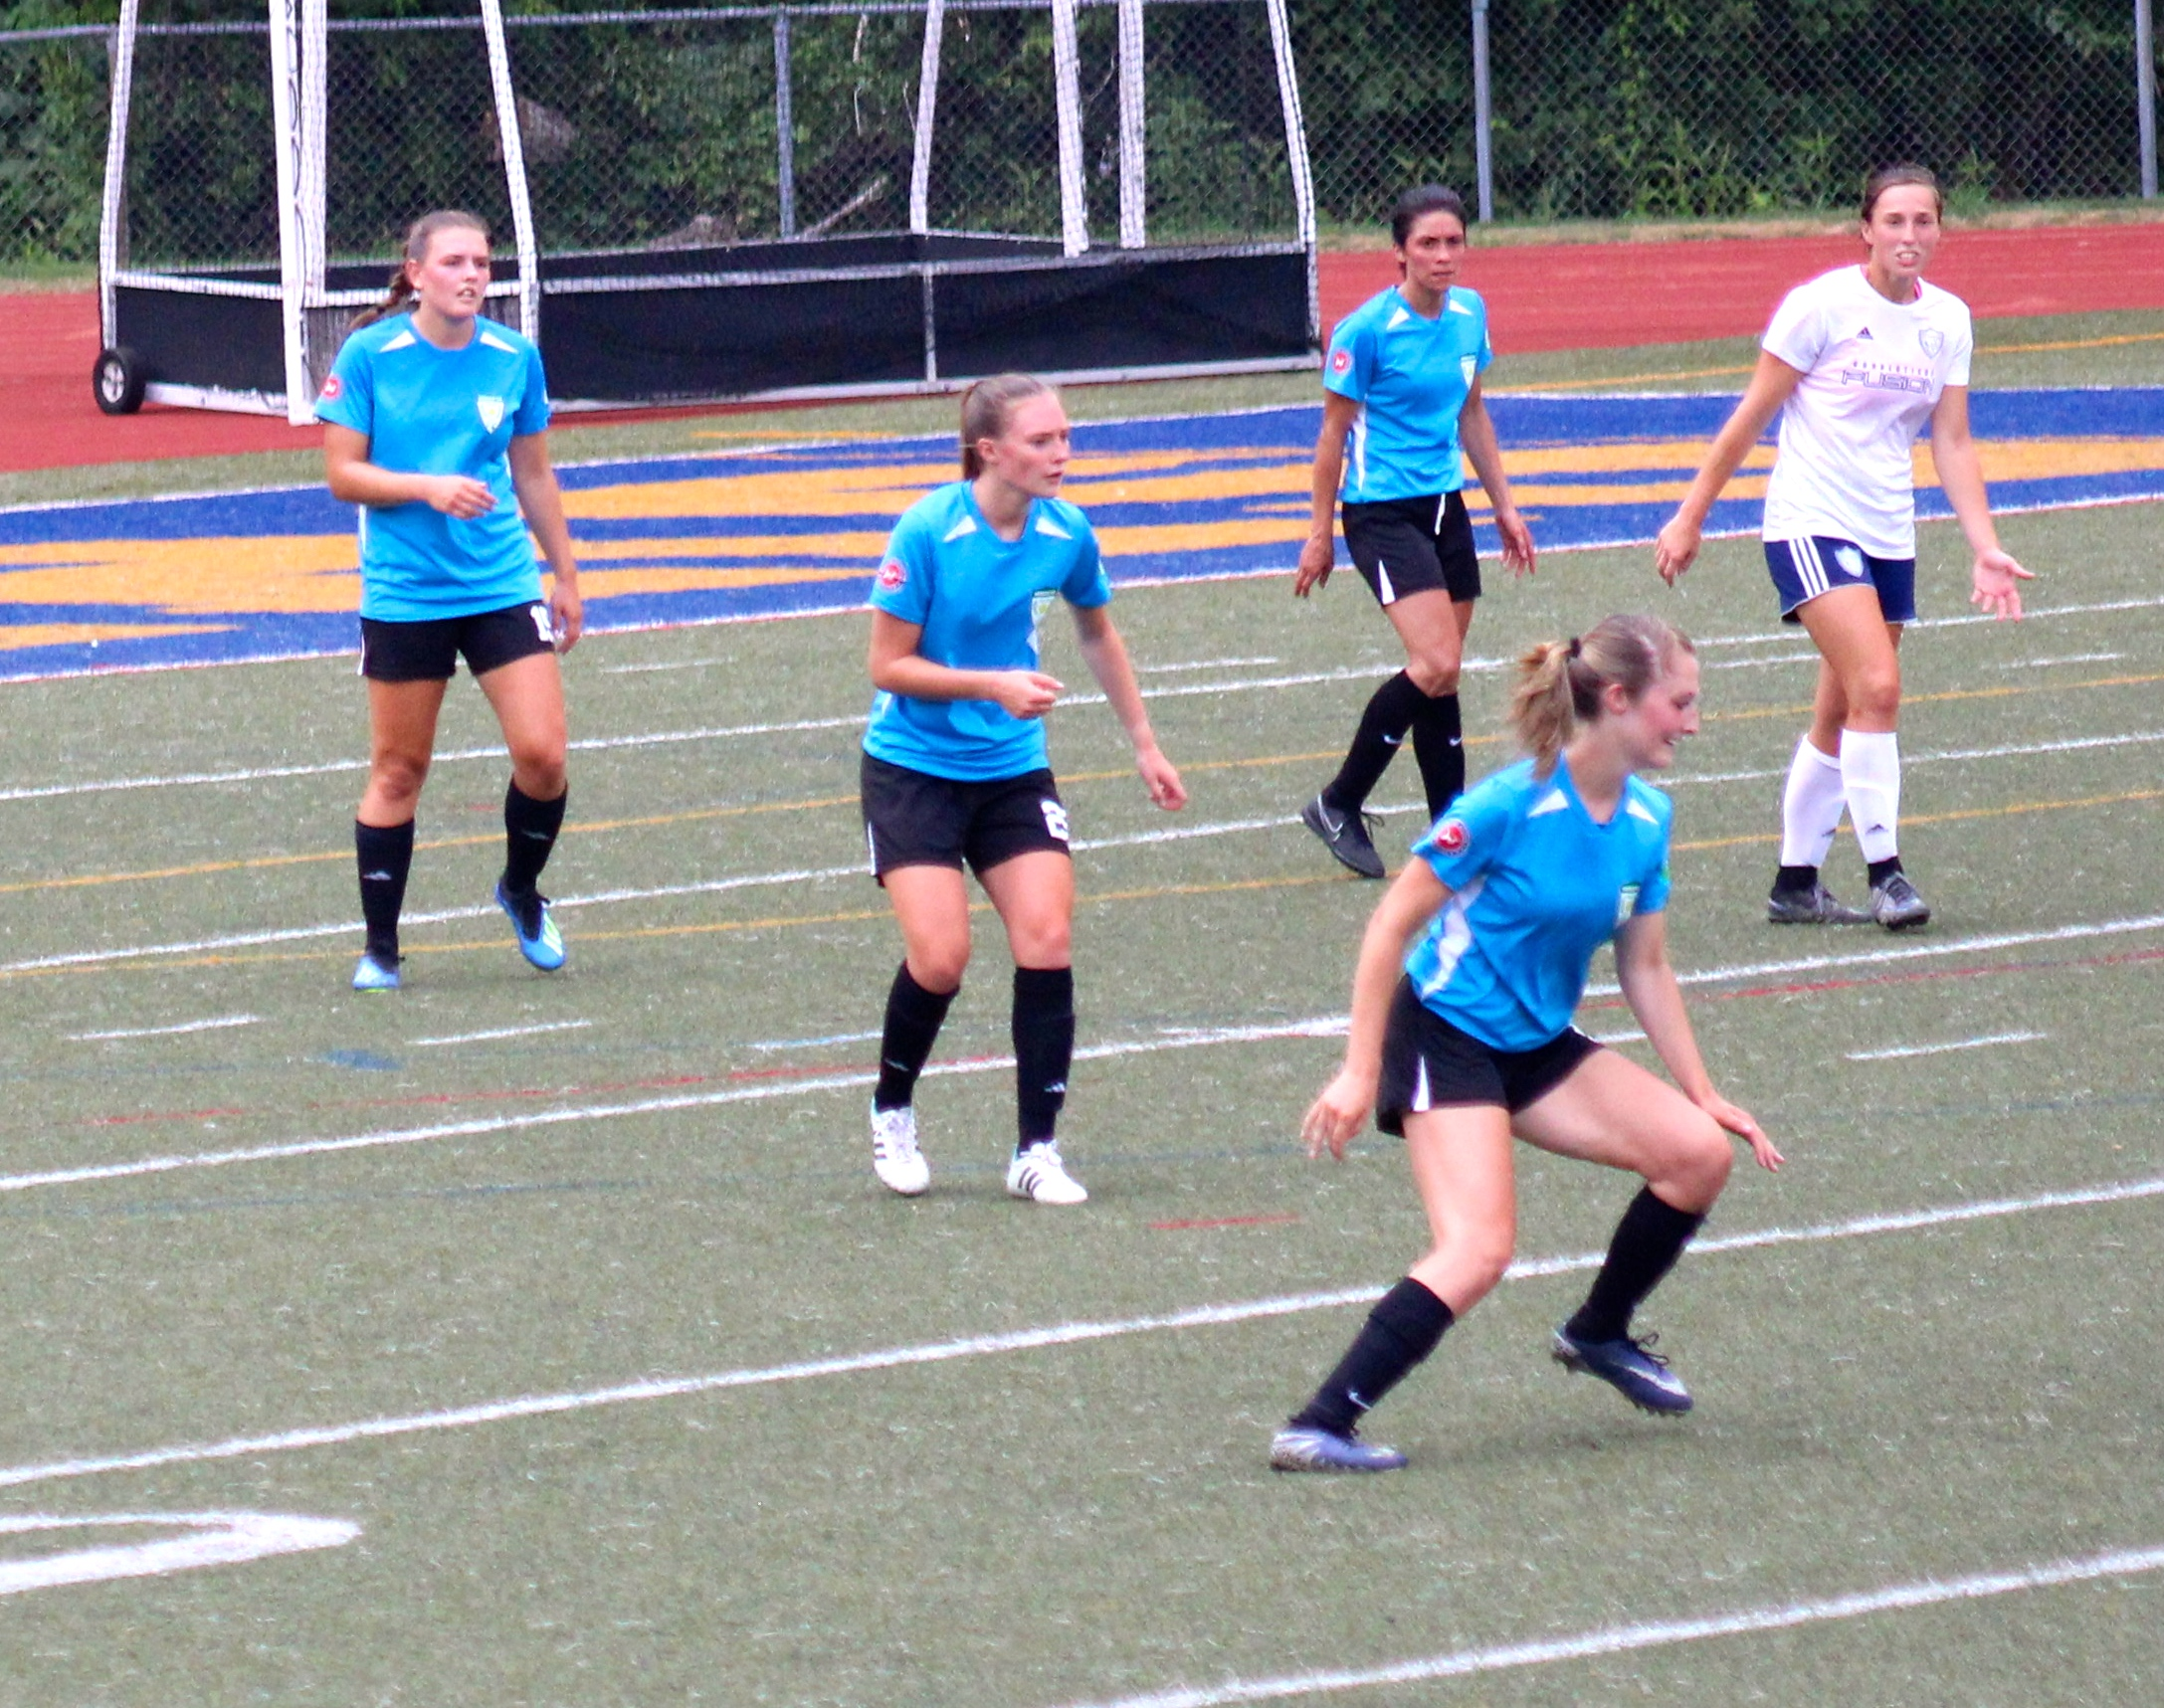 Open Tryouts for Worcester Smiles' 2021 Season